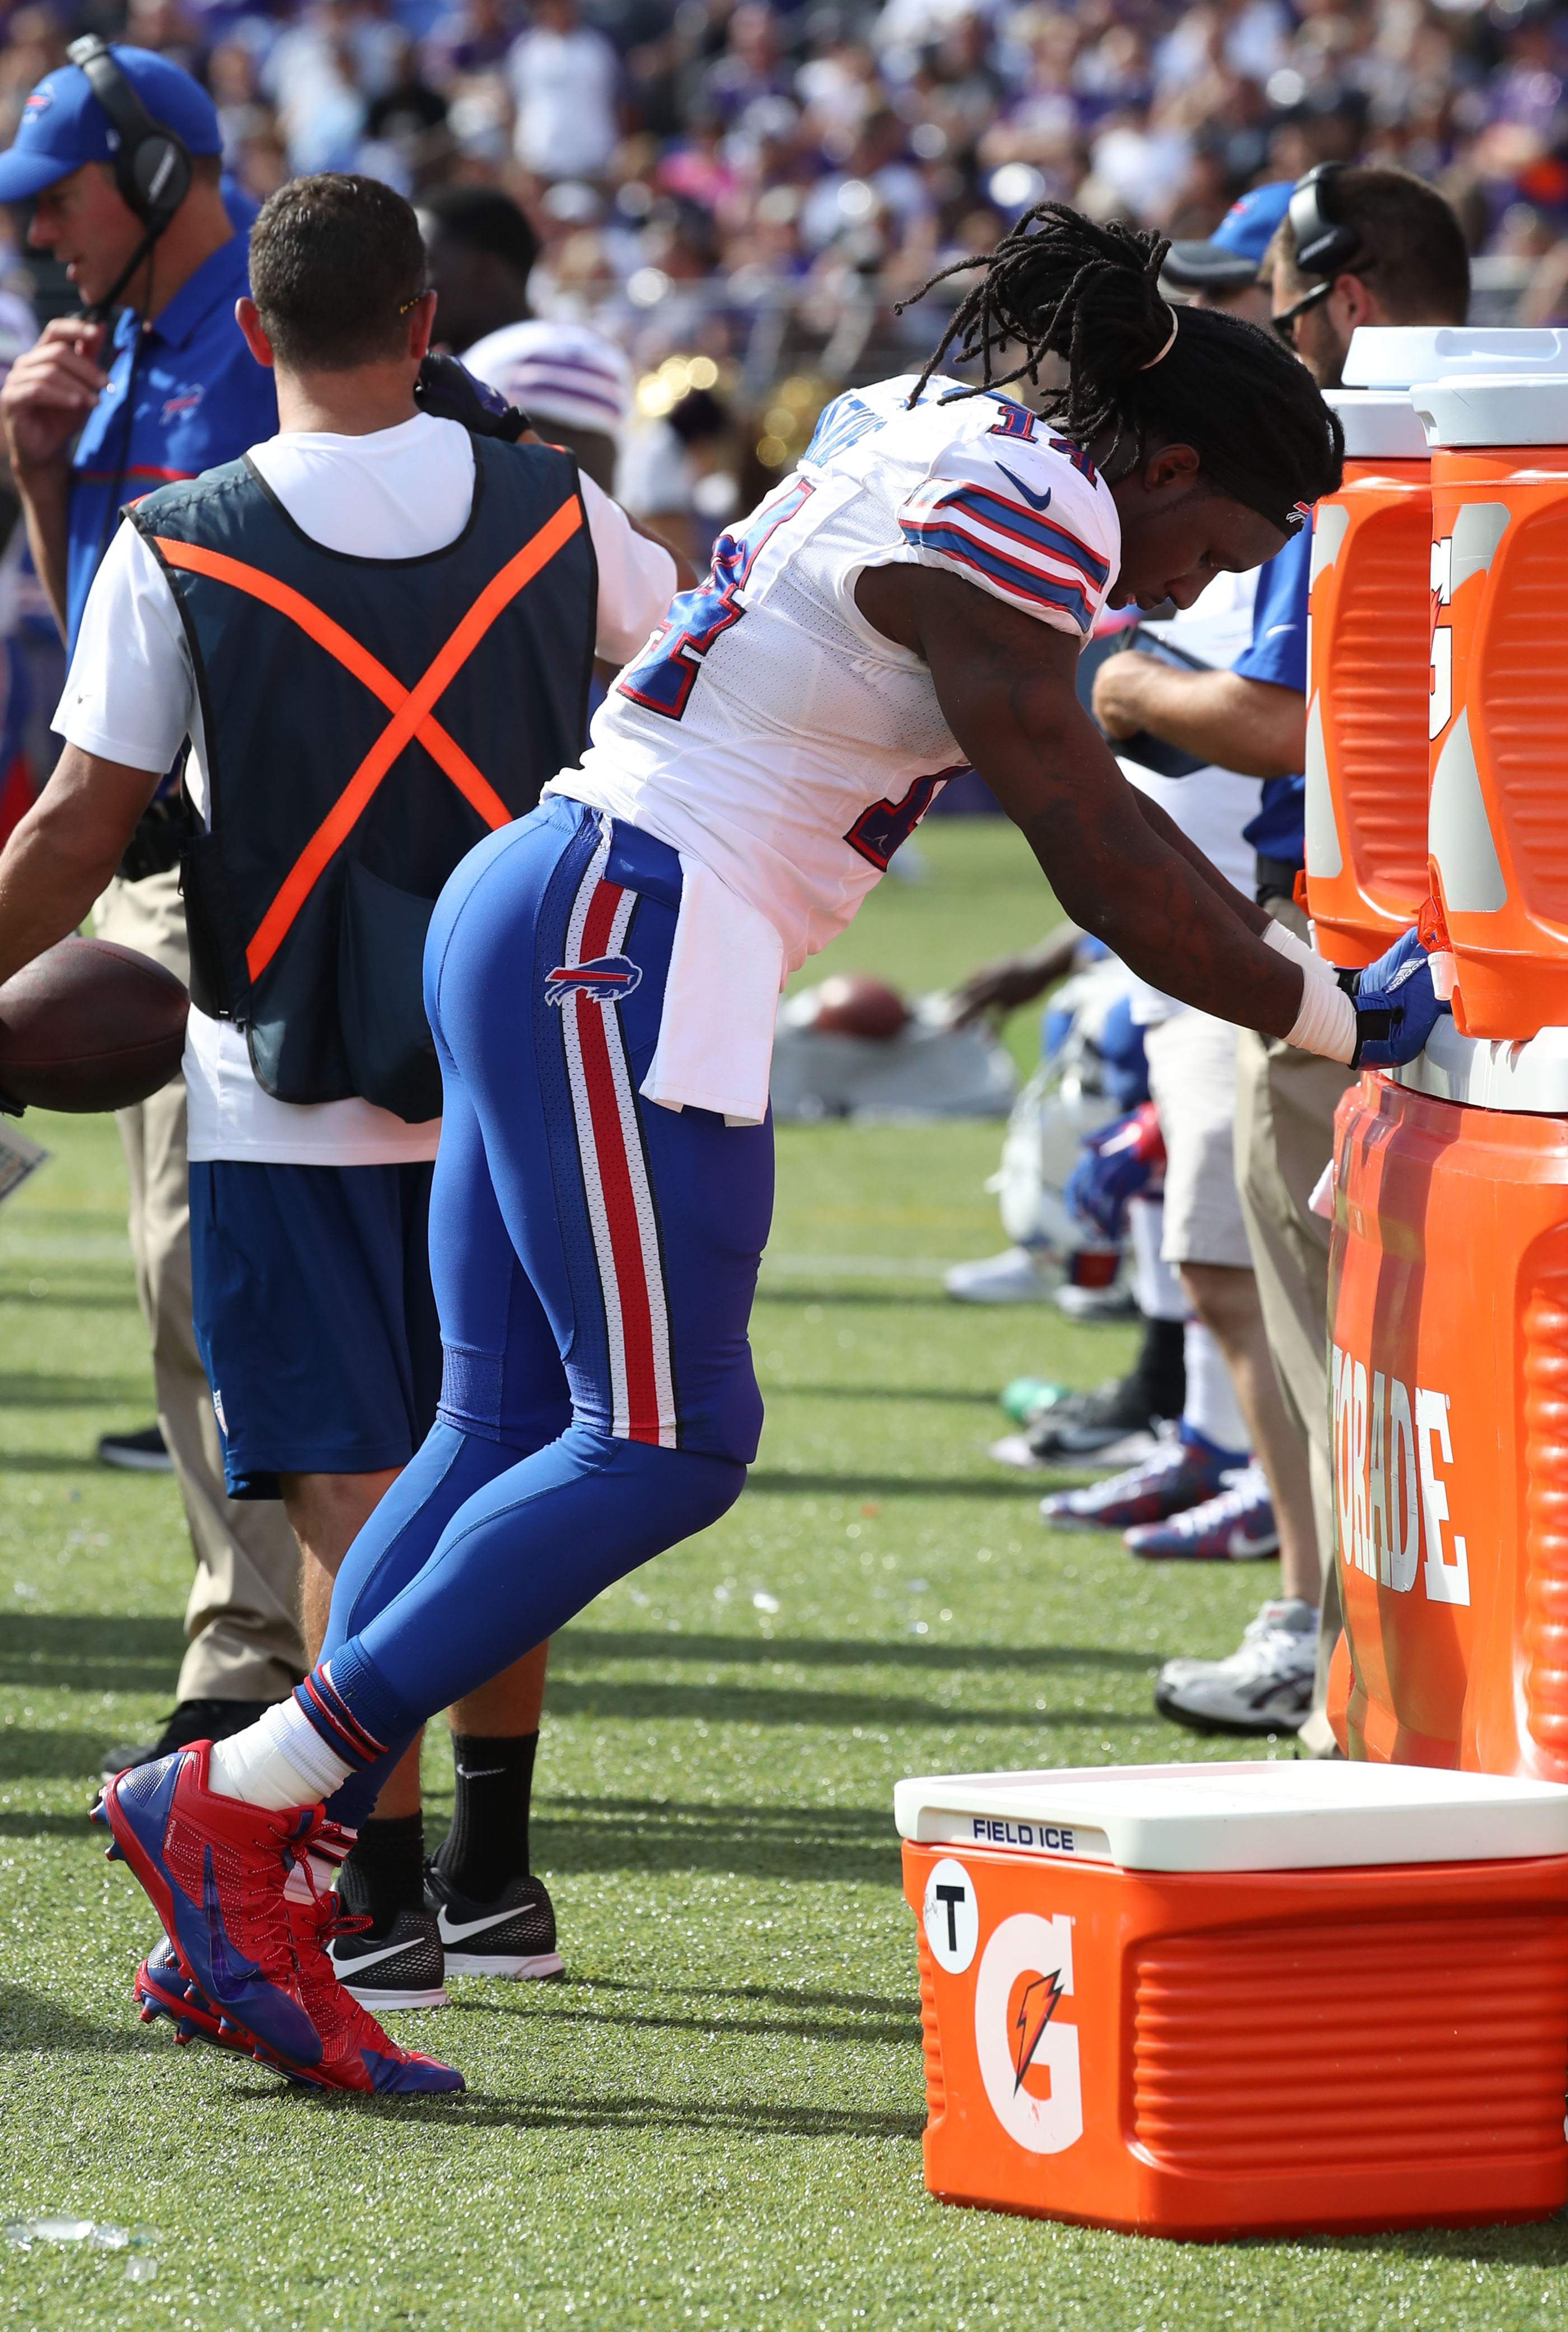 Sammy Watkins continues to be bothered by pain in his foot after having offseason surgery to repair a stress fracture.